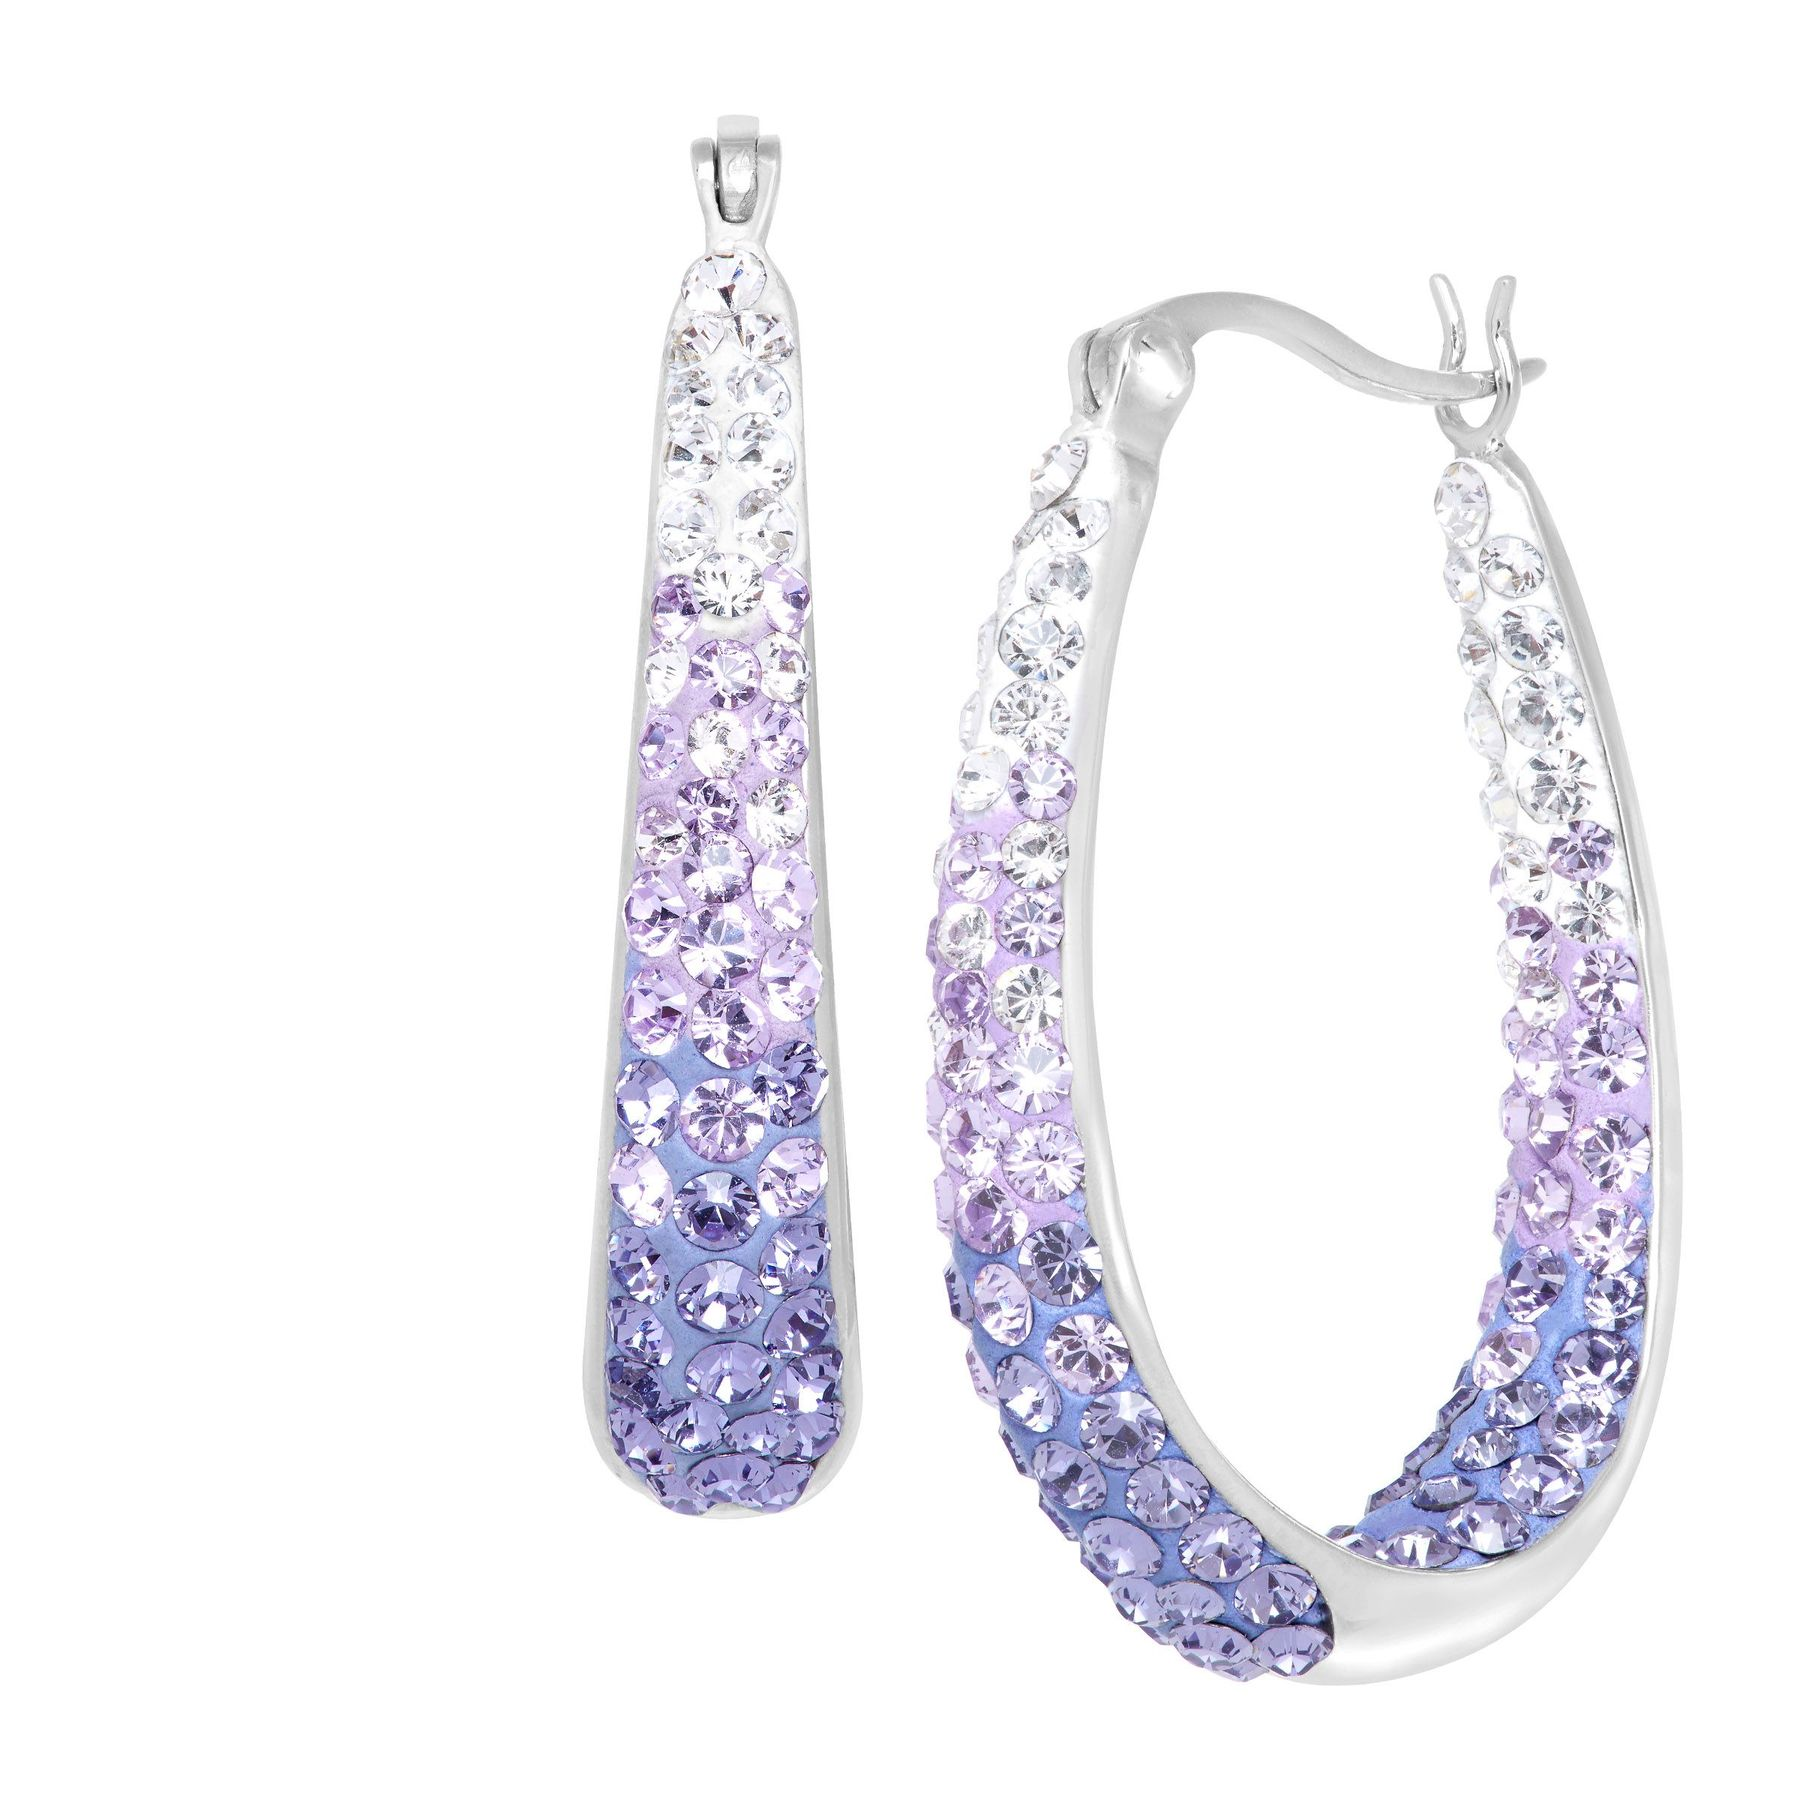 46ab92a5b Crystaluxe Oval Hoop Earrings with Lavender Swarovski Crystals in ...